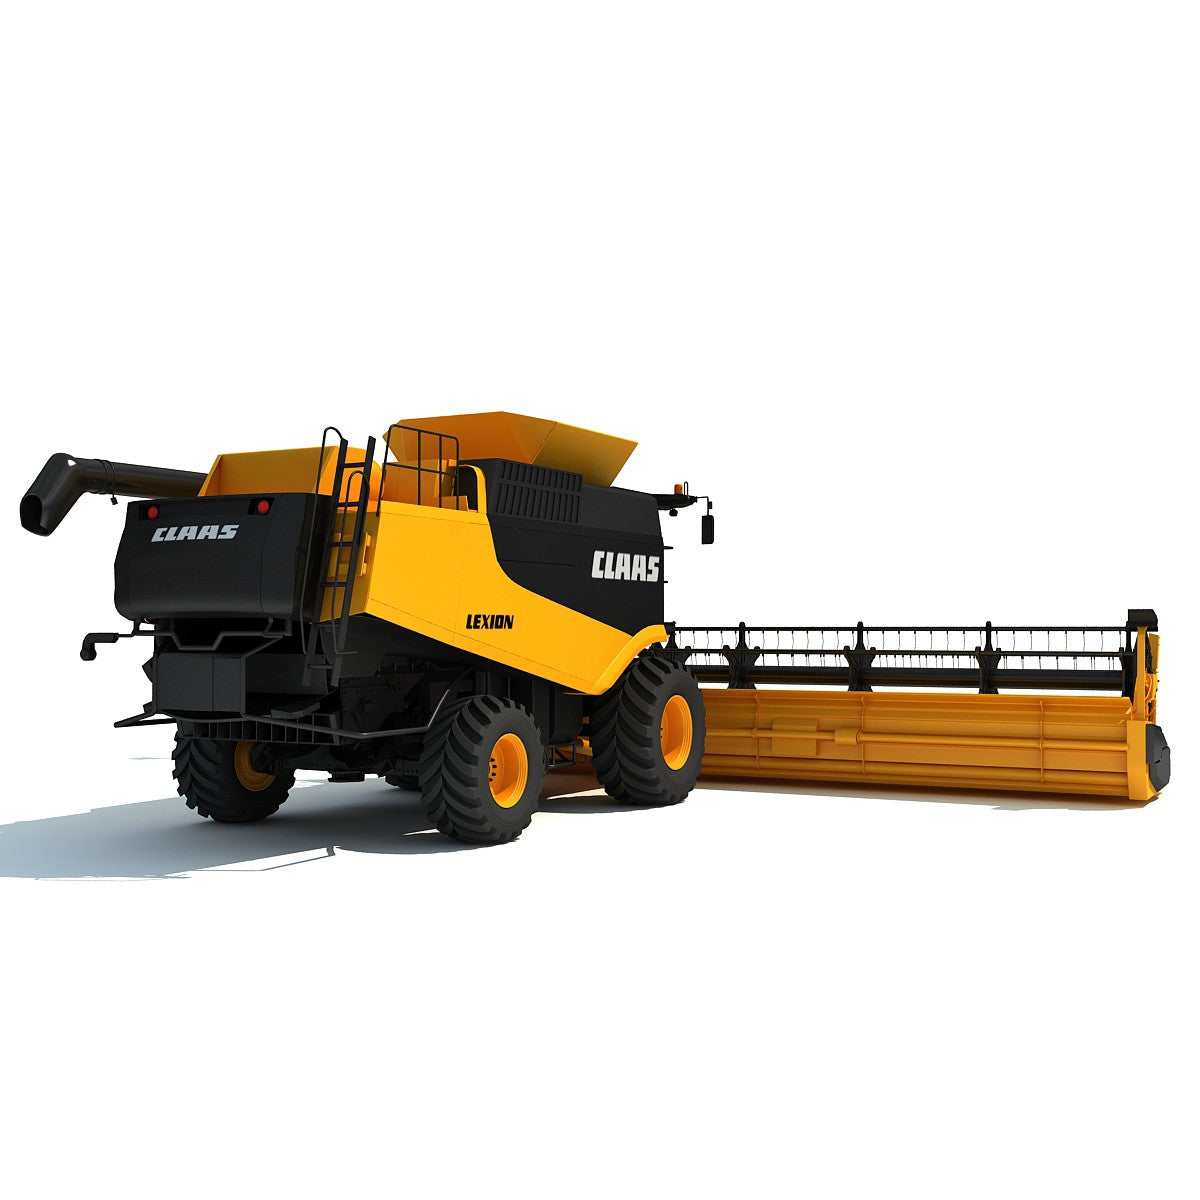 Claas Lexion Combine 3D Model